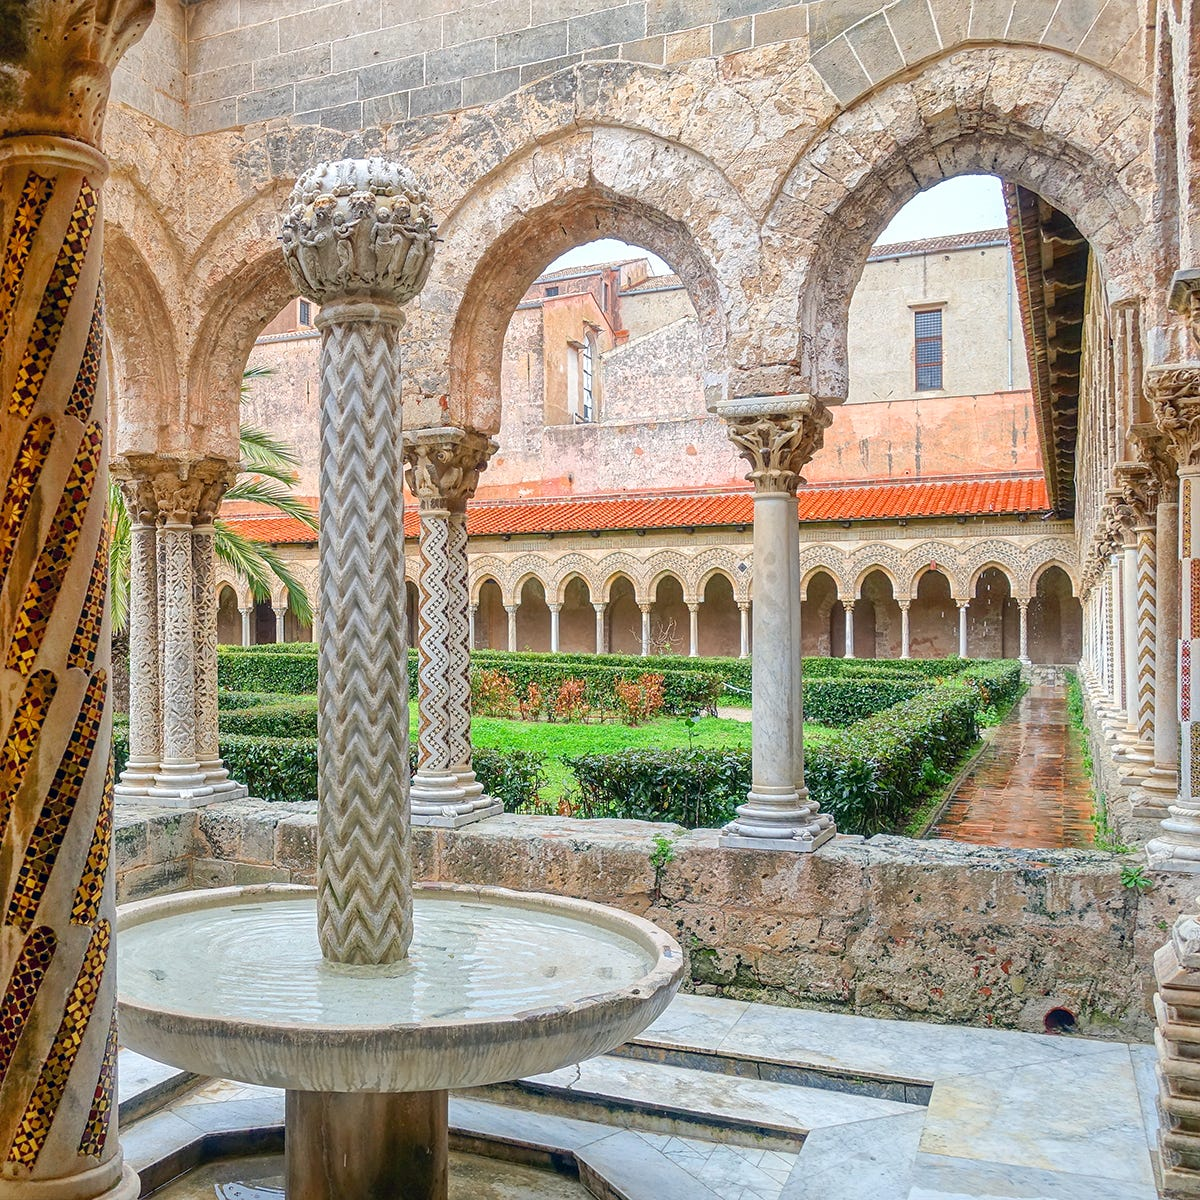 Surrounding Monreale Cathedral's cloister, 228 twin columns feature intricately carved capitals and Moorish-influenced mosaics.